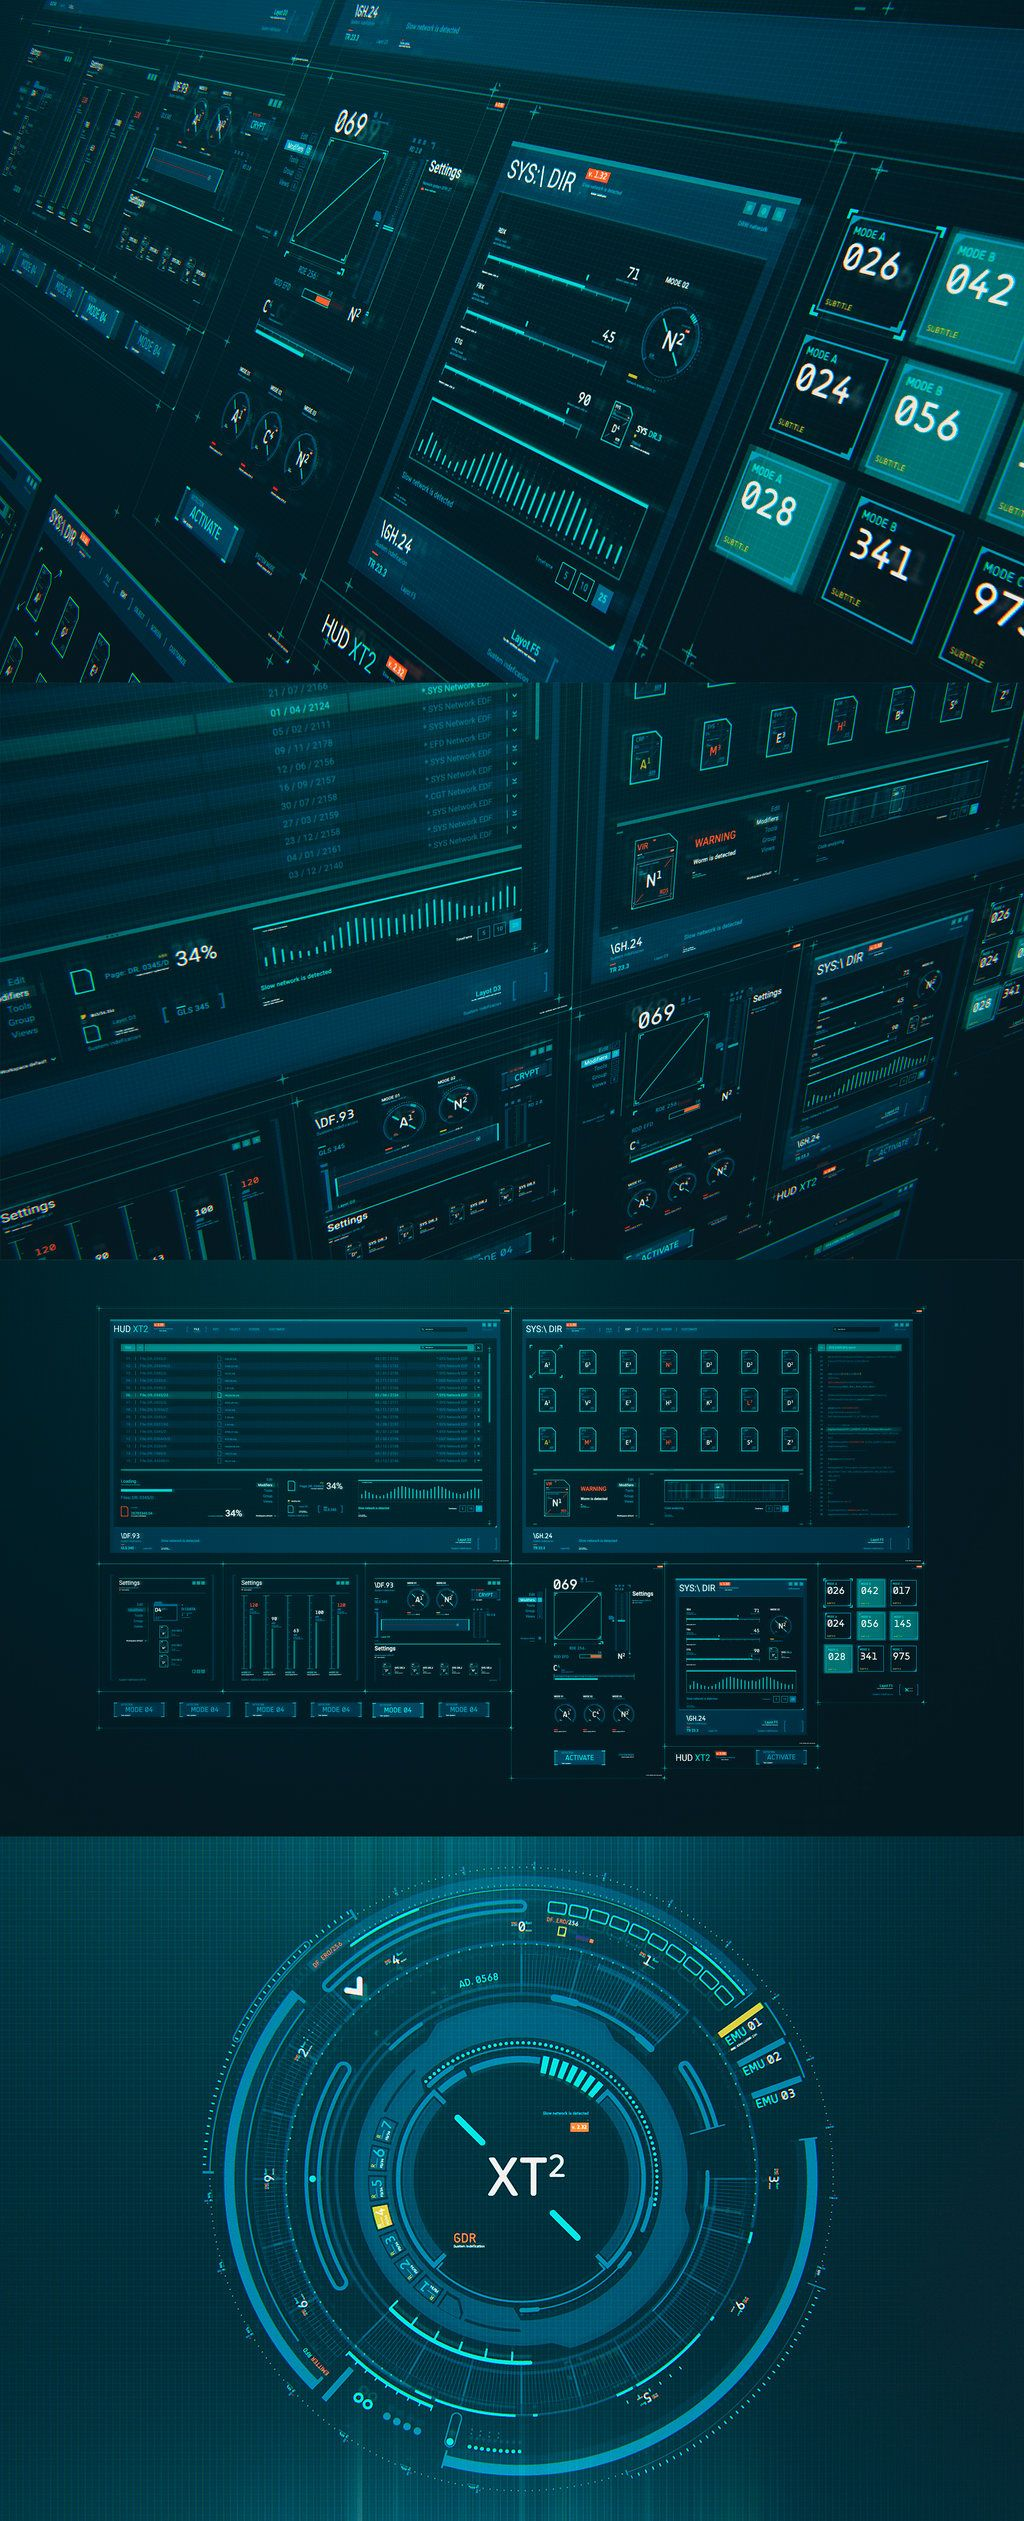 HUD GUI Kit XT2 by TIT0 on DeviantArt